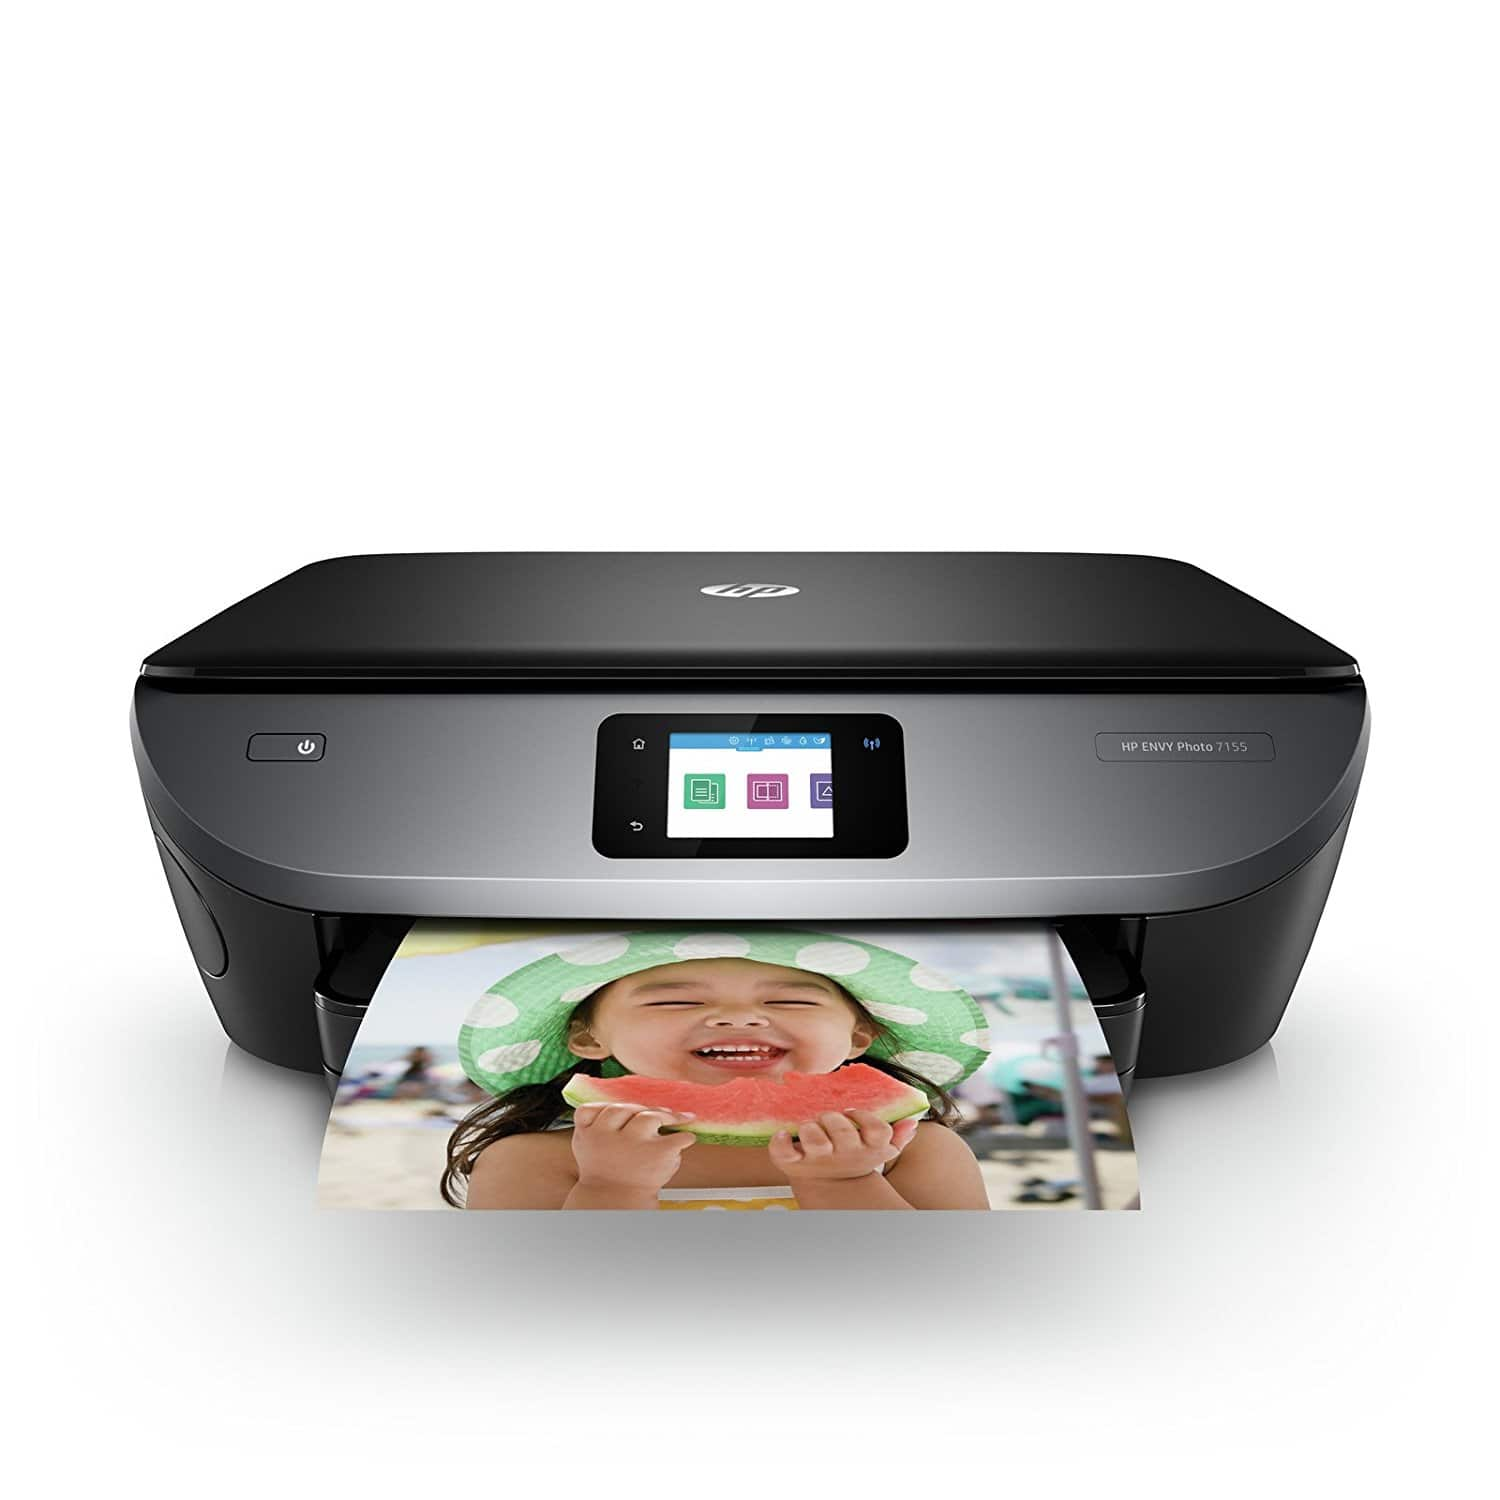 Amazon Prime Printer Sale - From $53 + Free Shipping